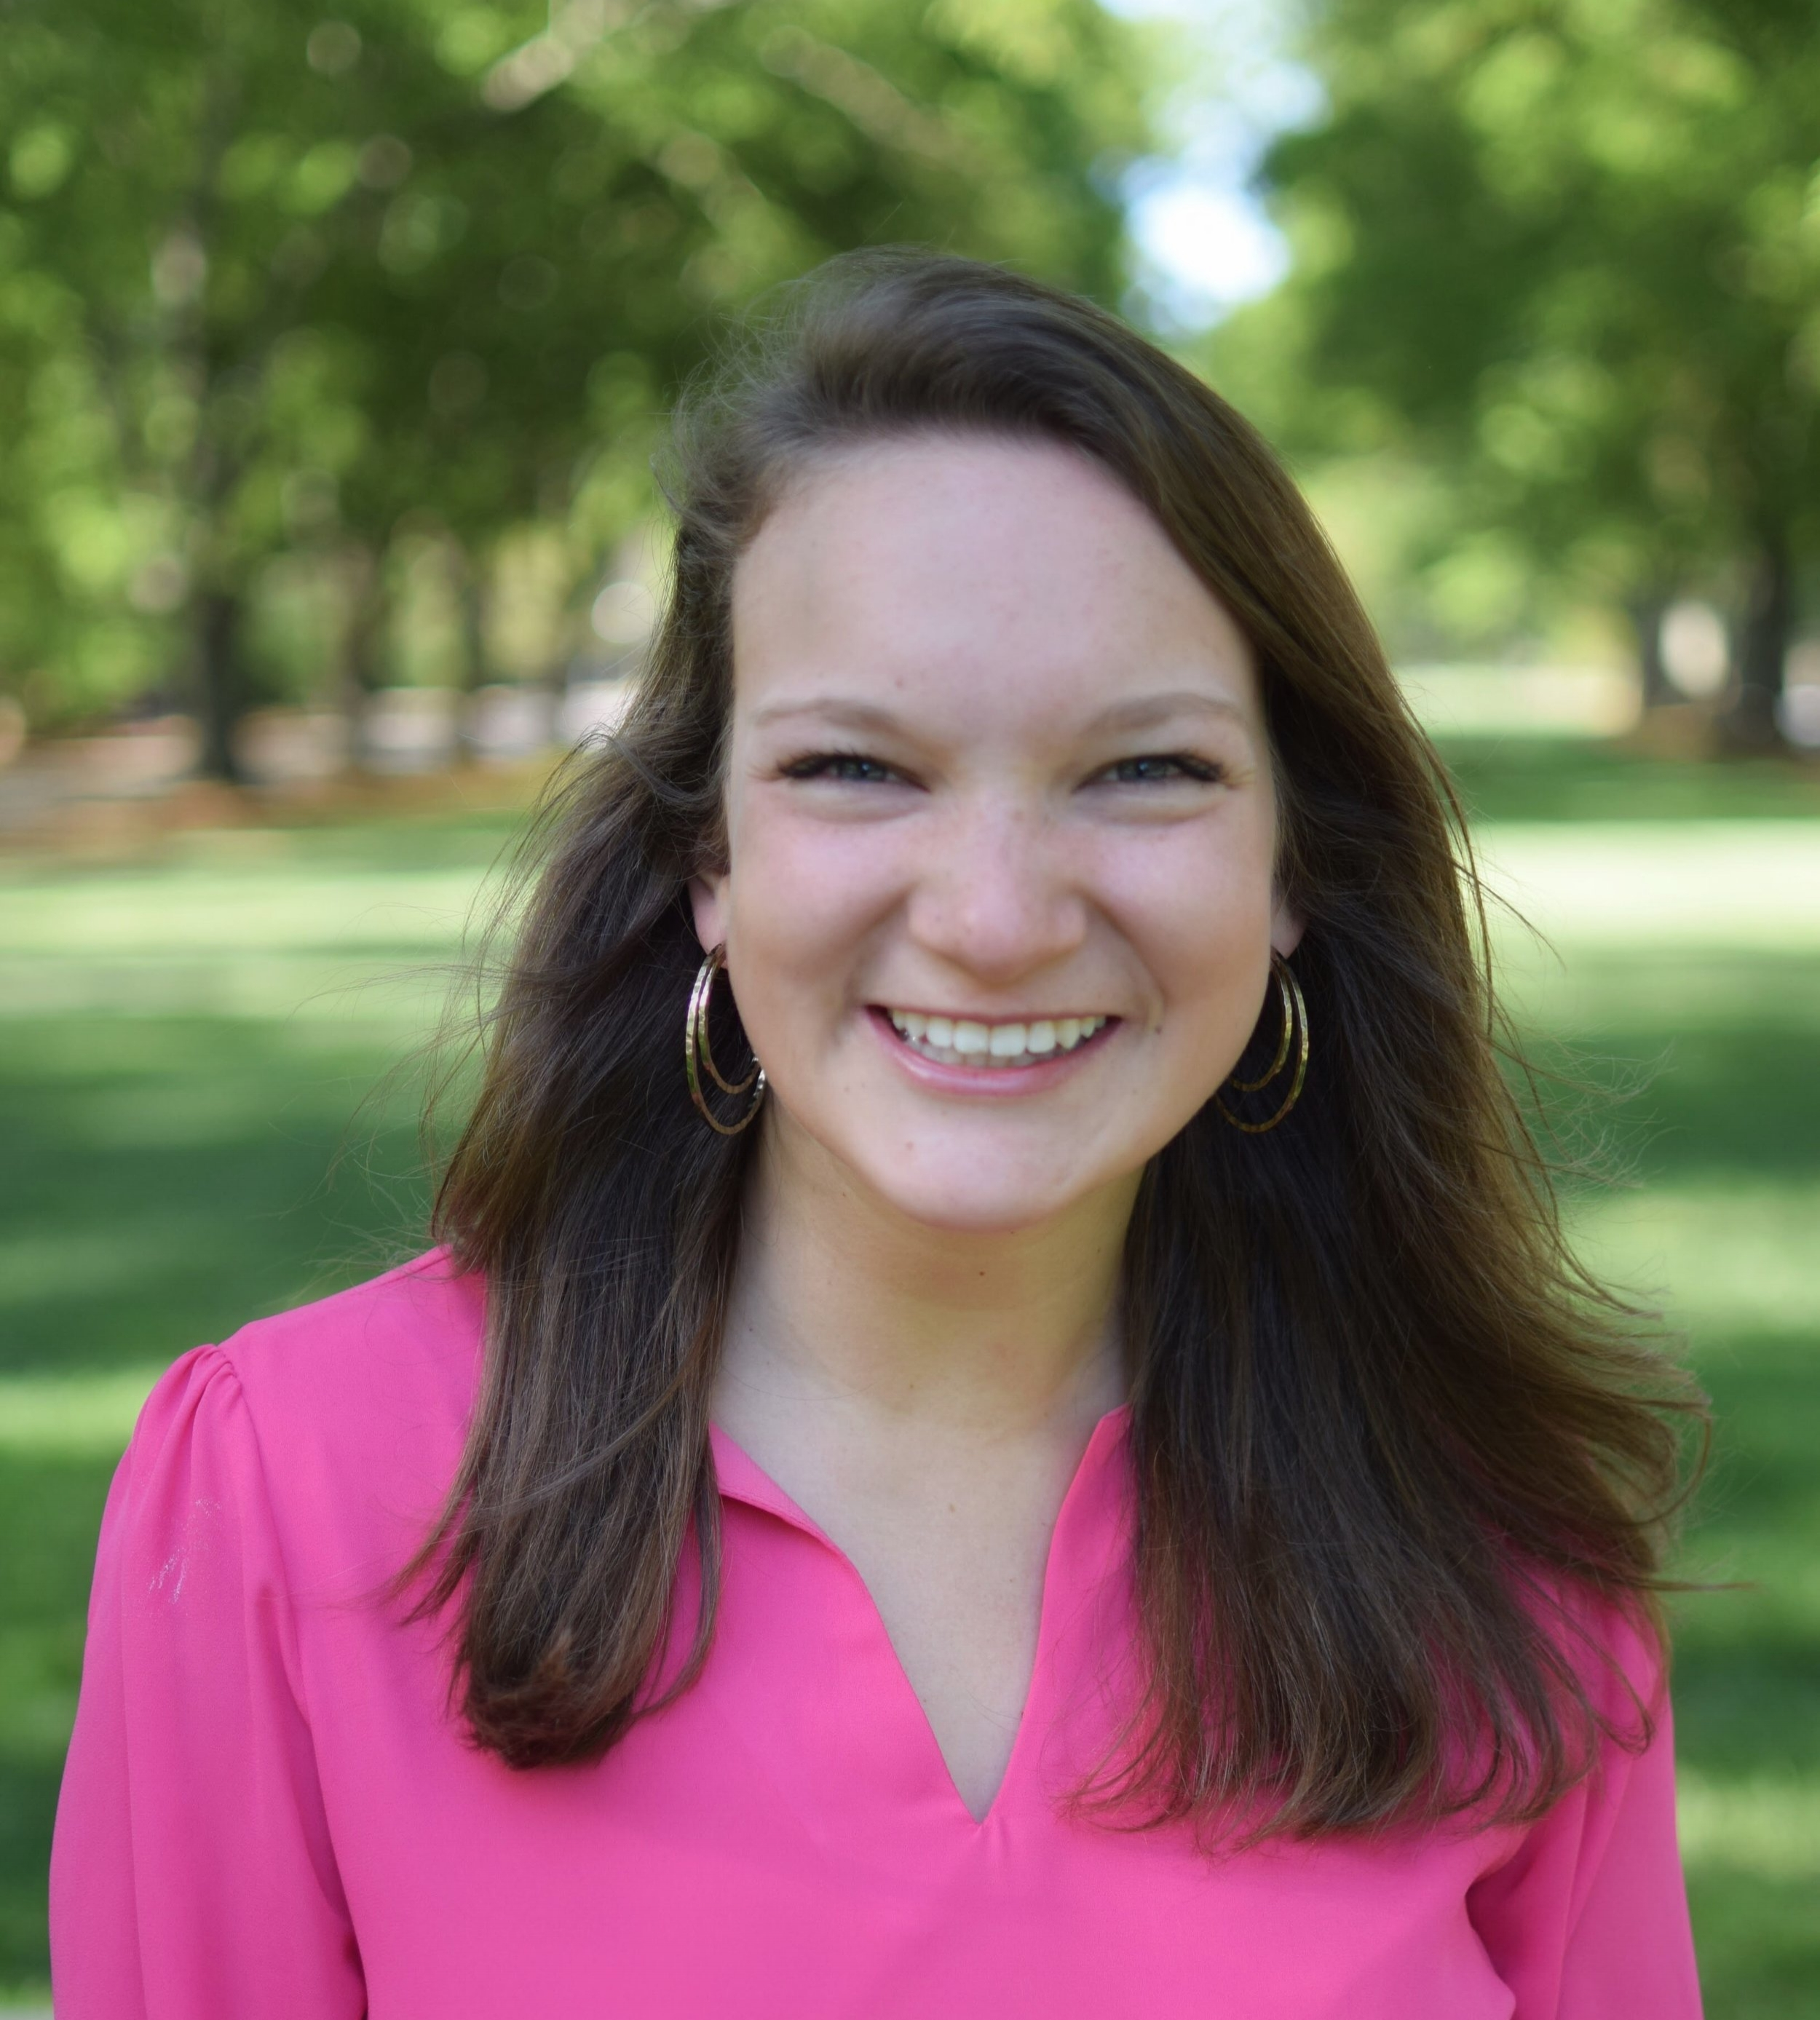 Laura Johnson   Winston-Salem, NC  Furman University  Employer: Novant Health  Church: Redeemer  I find happiness when browsing around a bookstore or sitting at a coffee shop by myself. I come from a family where love of books is mandatory. I love trying out new restaurants and I could eat breakfast for every meal. I've spent four summers coaching a summer league team in Winston, the Sherwood Sharks. Being a swimmer my whole life and having spent my childhood at Sherwood, I love sharing my excitement for the sport with kids. It is so satisfying to watch my swimmers improve and be excited about becoming better swimmers. At Furman, I majored in Politics and International Affairs as well as Religion. I also acquired a minor in Poverty Studies which led me to a summer of working to help the low-income population of Greenville County better access the healthcare system. I am fascinated by the healthcare system and am seeking a career working in healthcare policy.